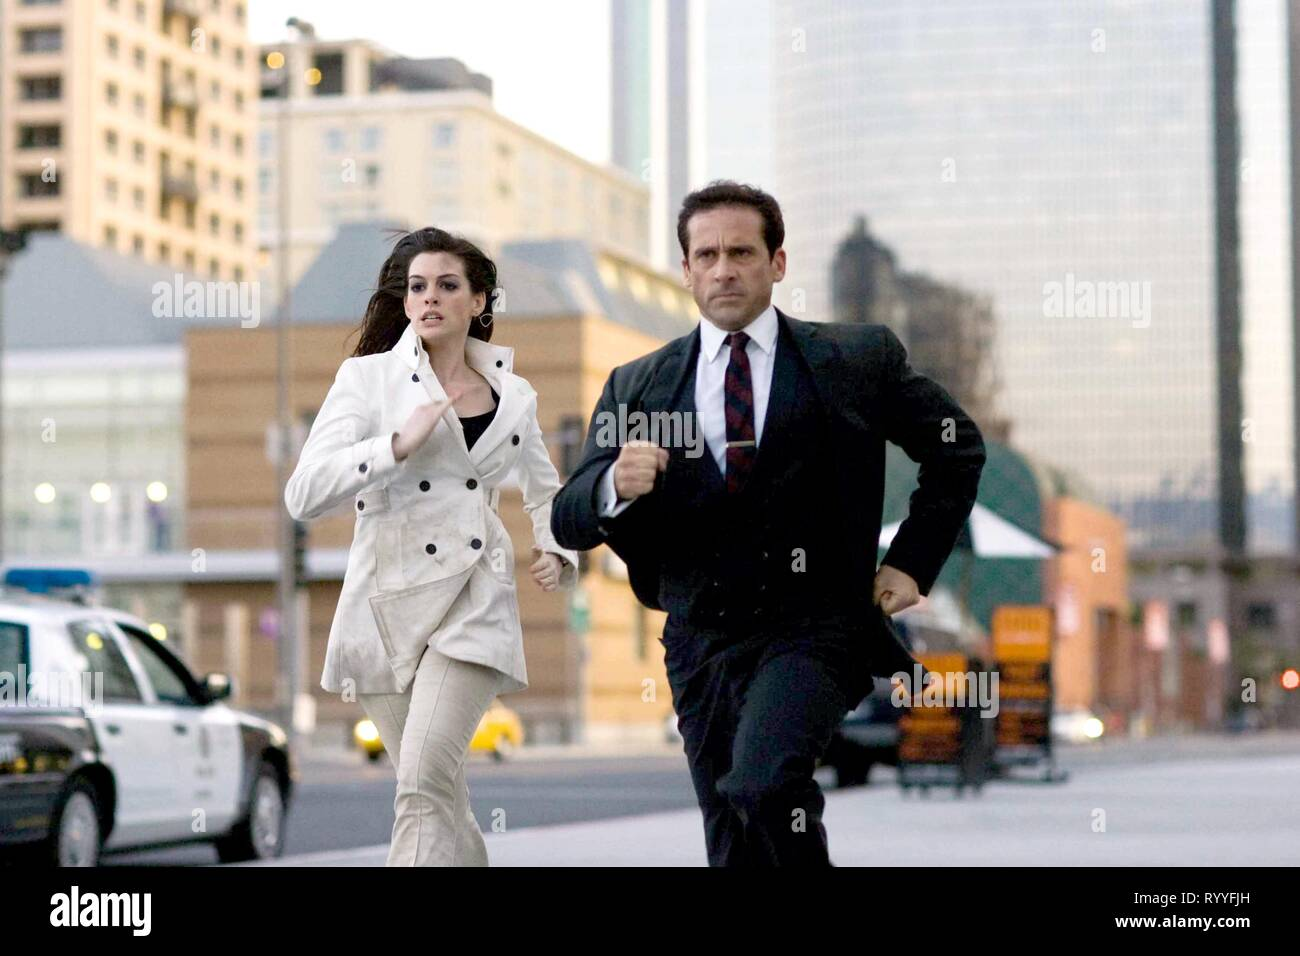 HATHAWAY,CARELL, GET SMART, 2008 - Stock Image